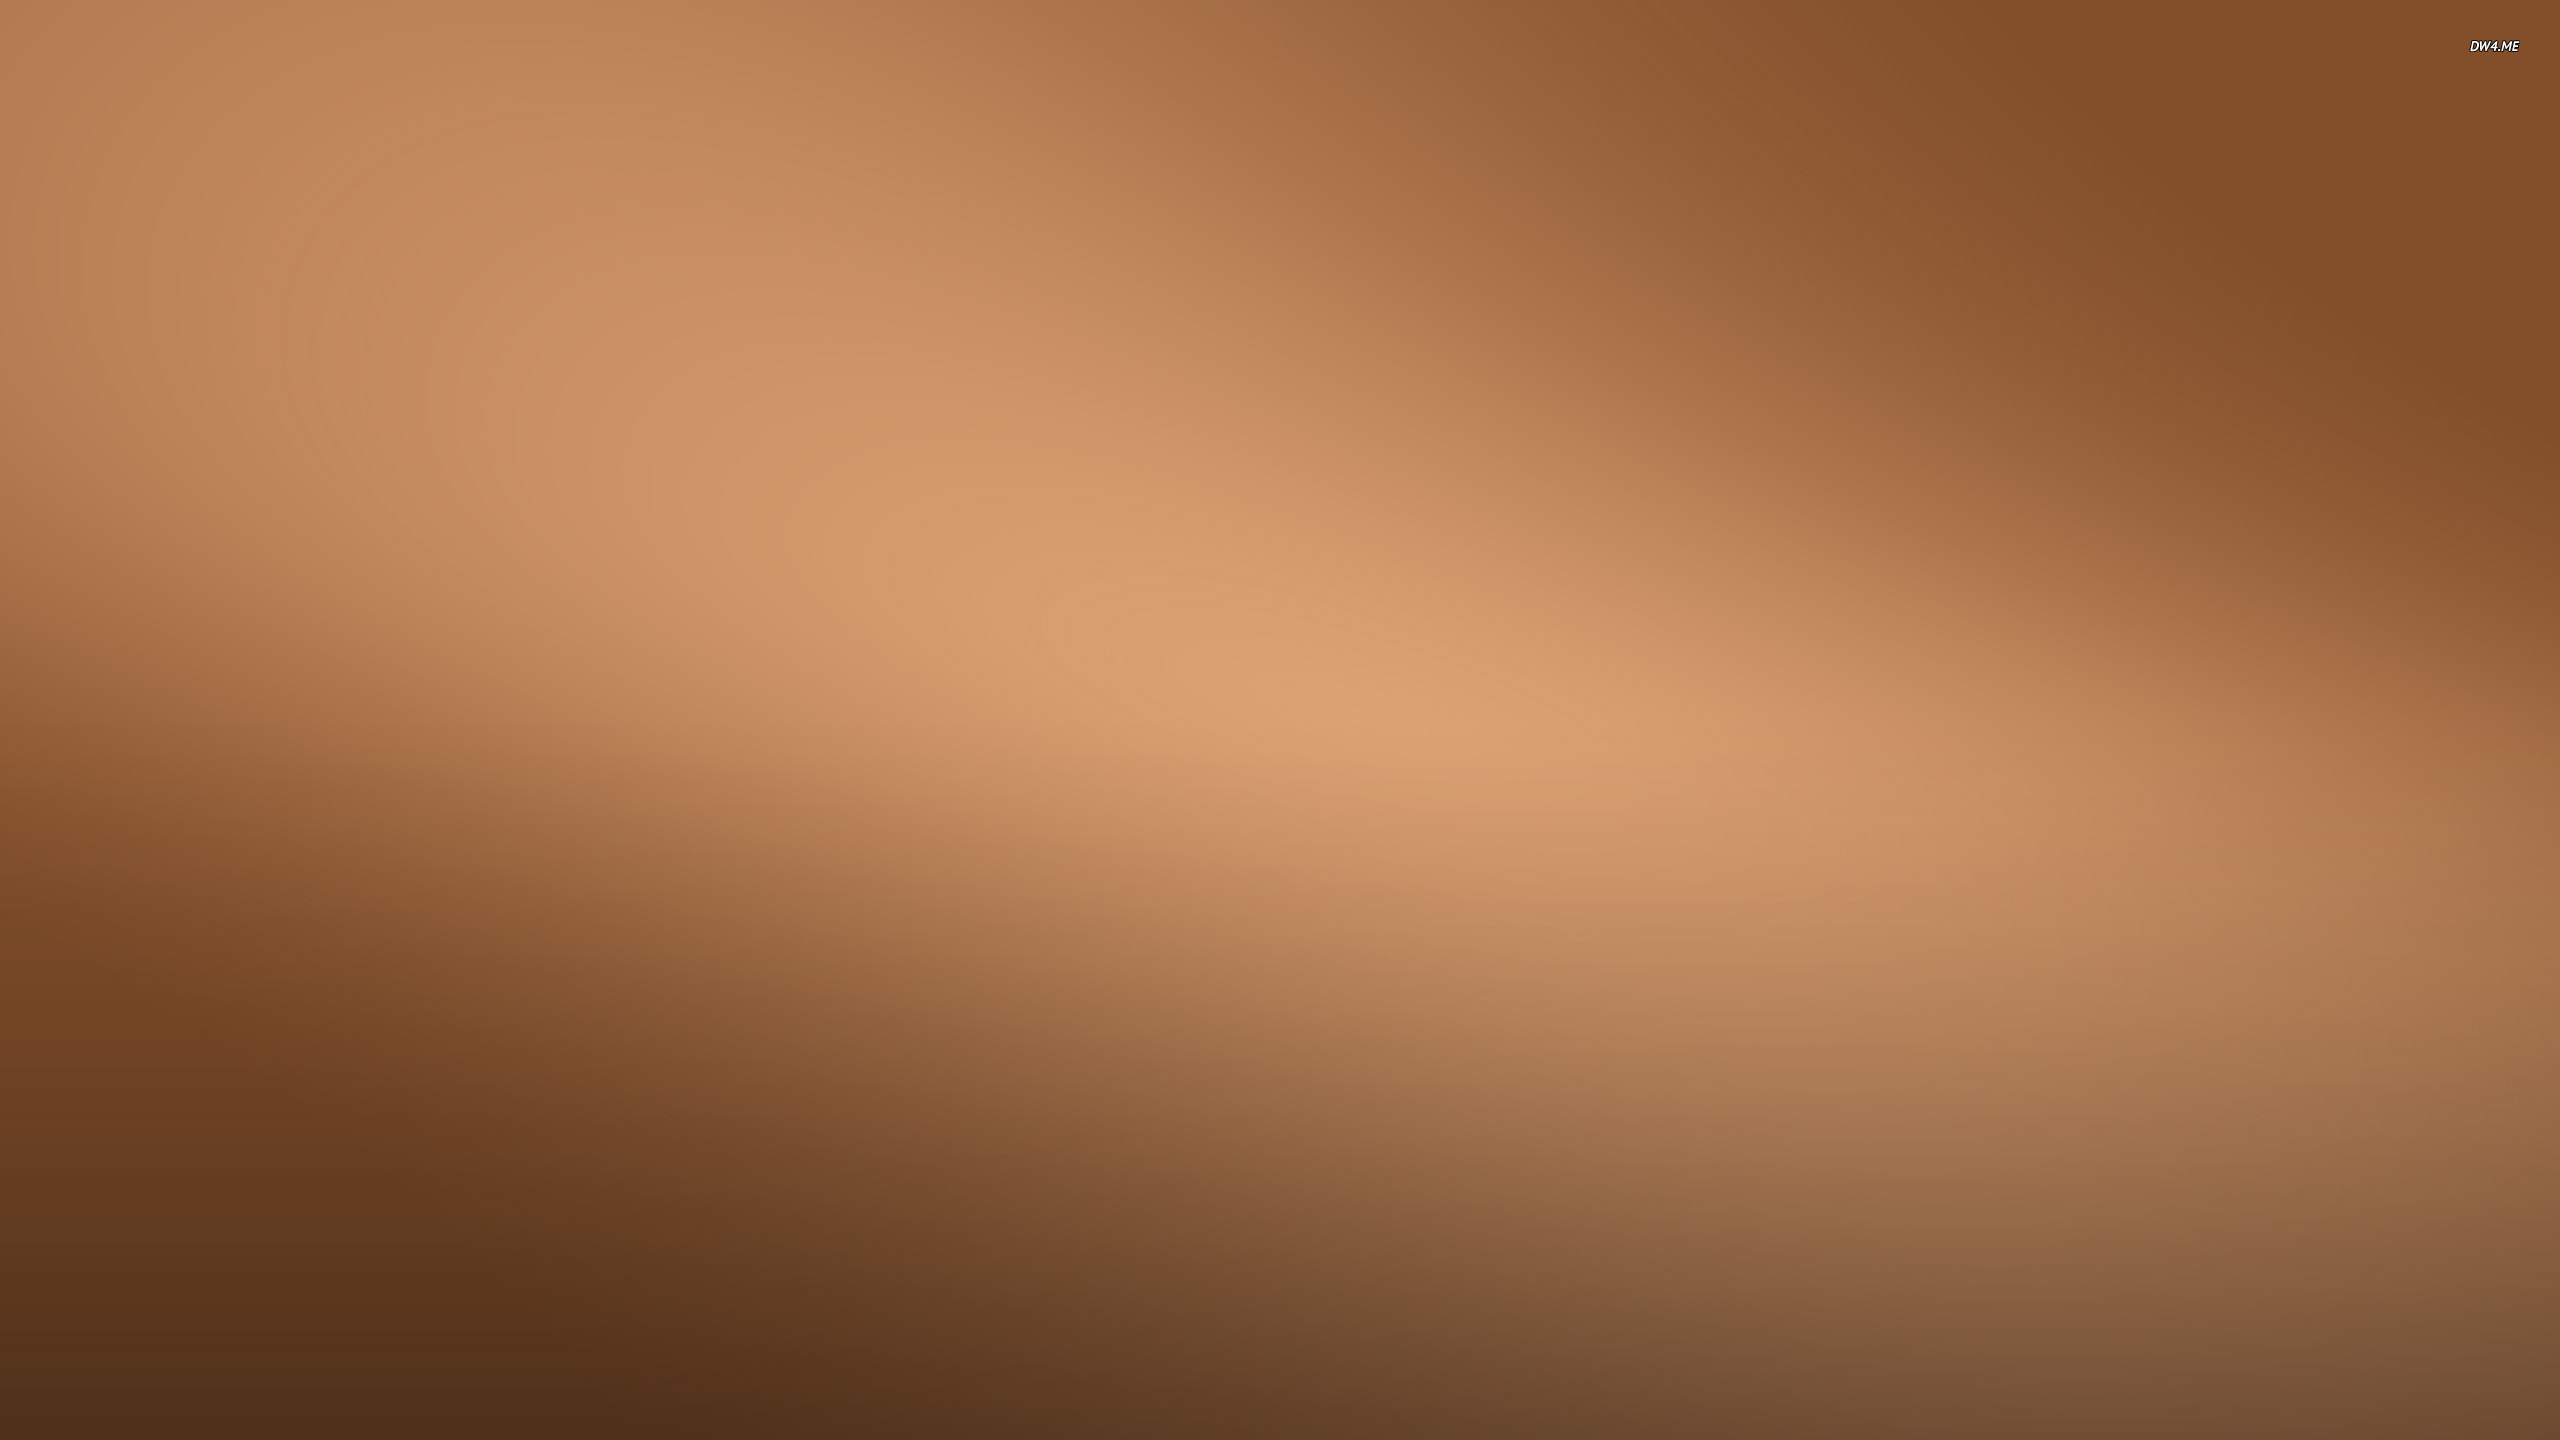 Bronze wallpaper   Minimalistic wallpapers   387 2560x1440